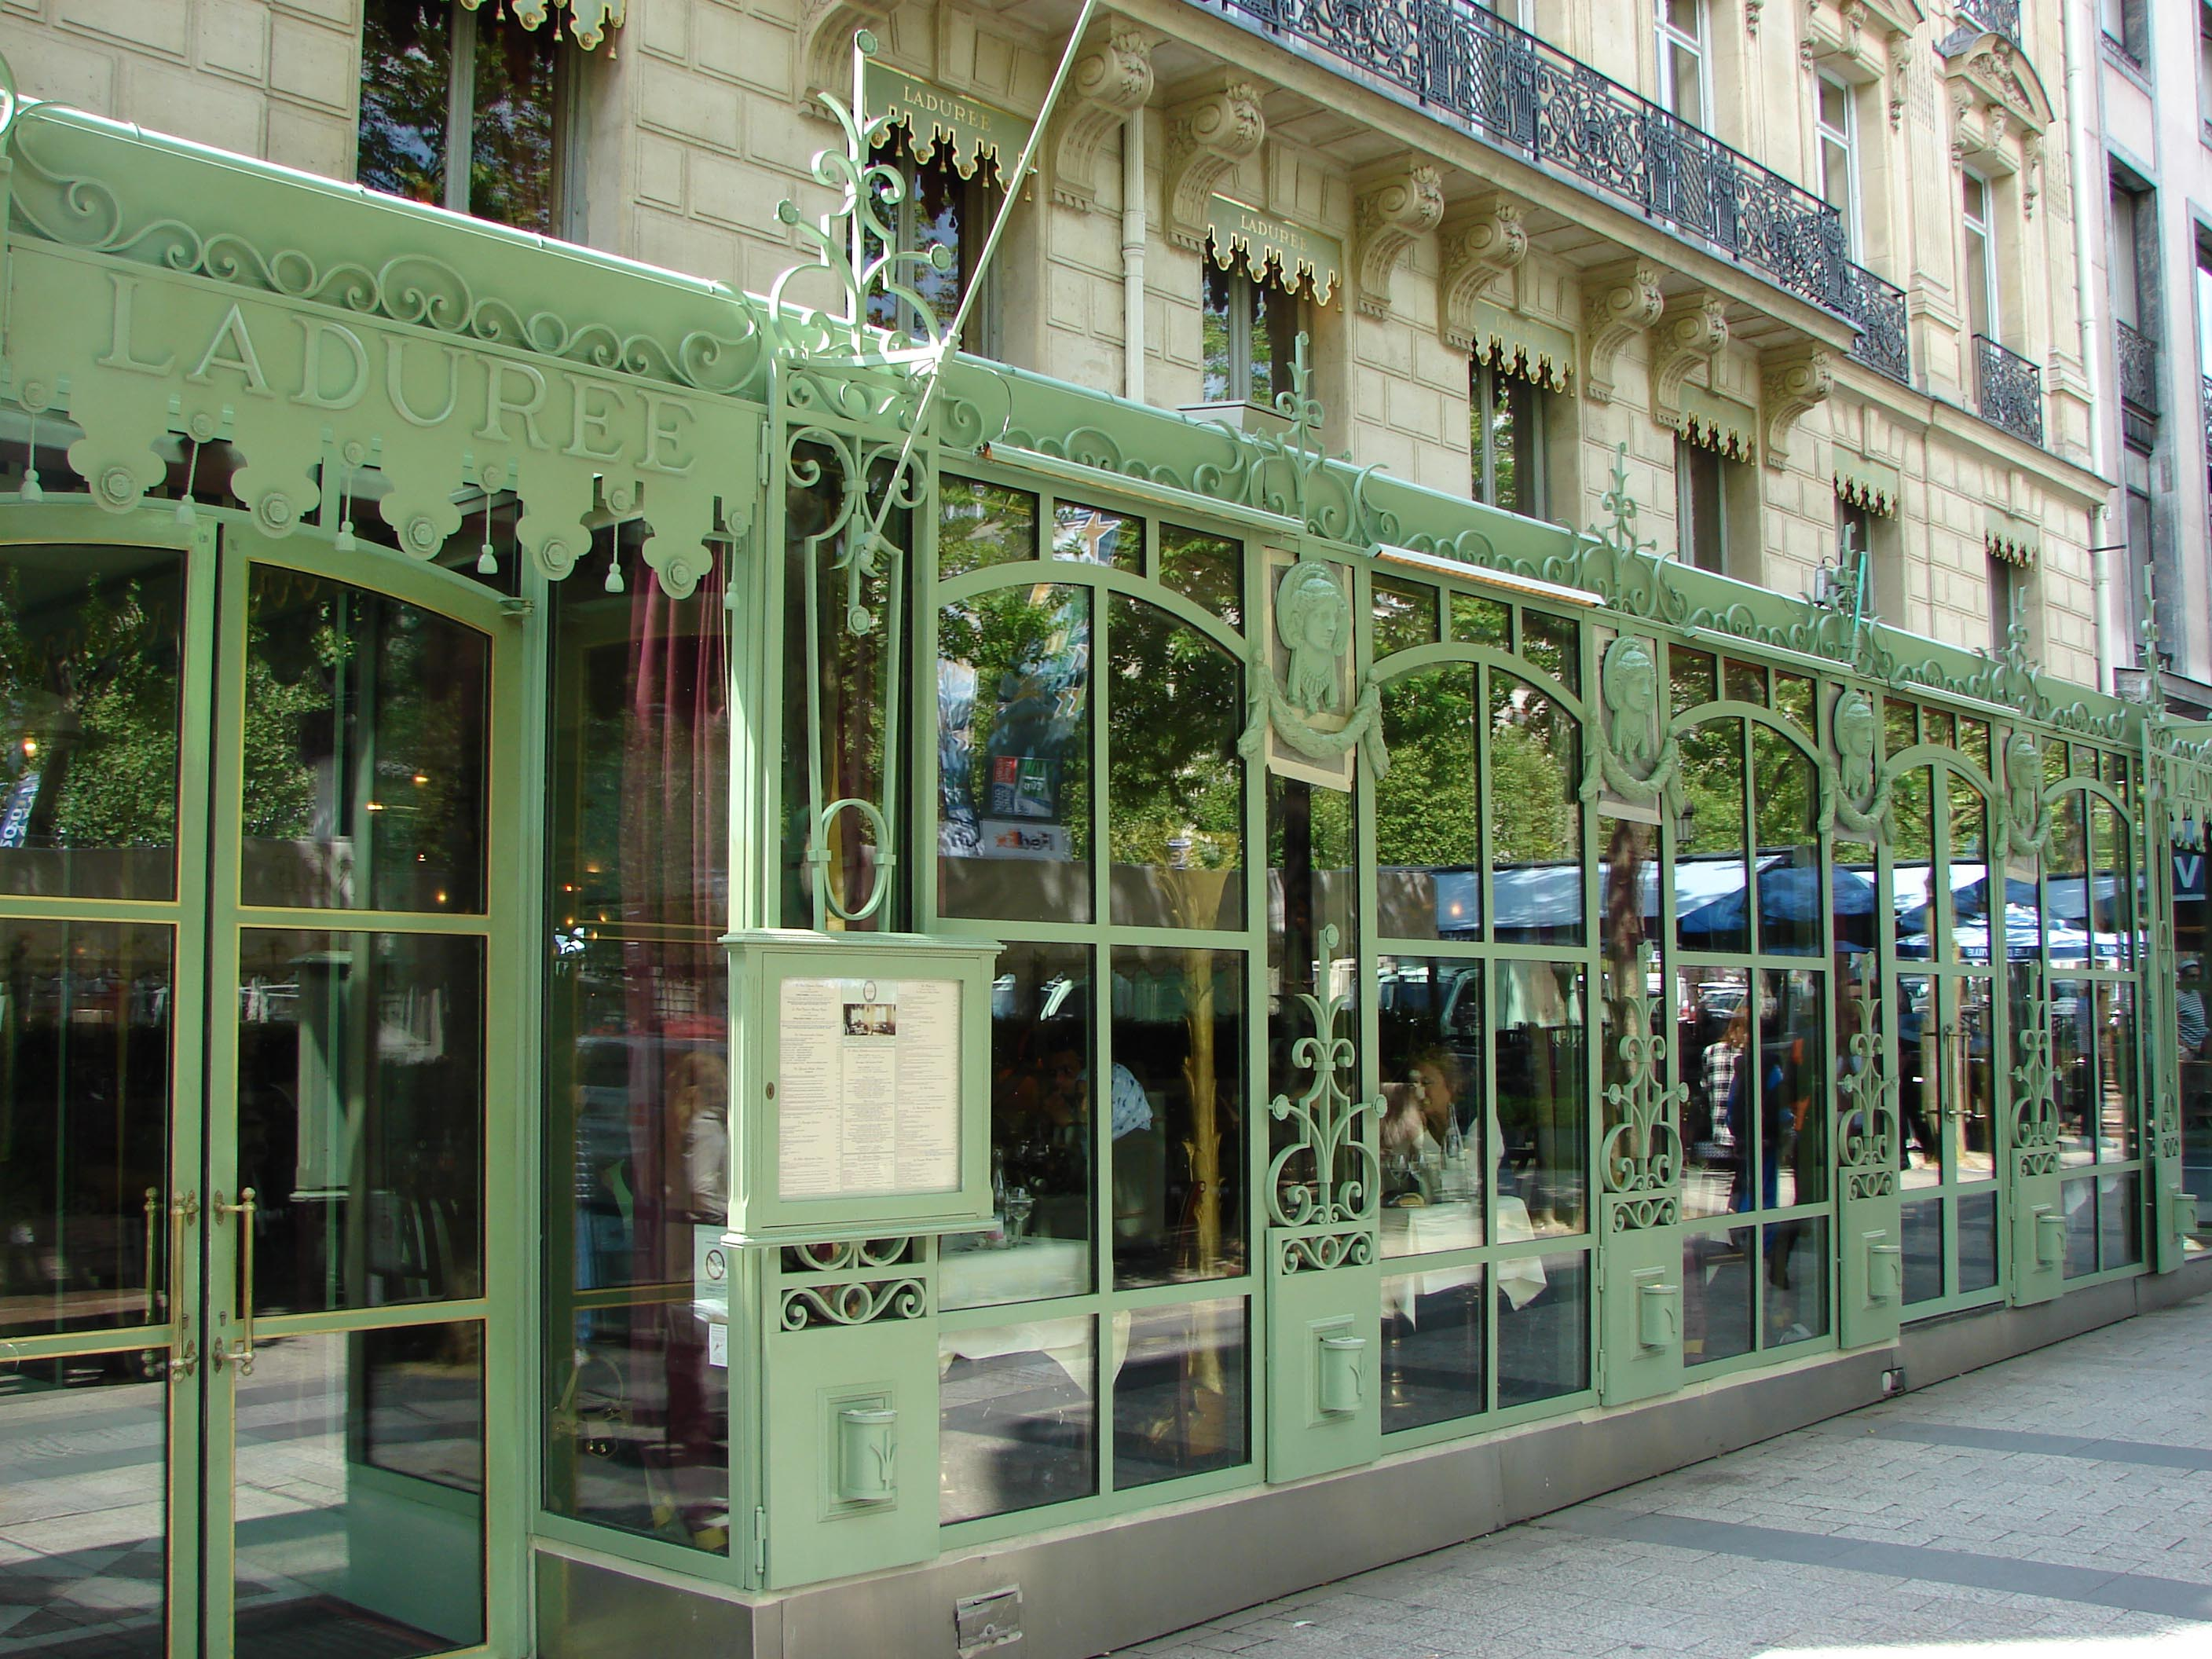 Laduree-Champs Elysees